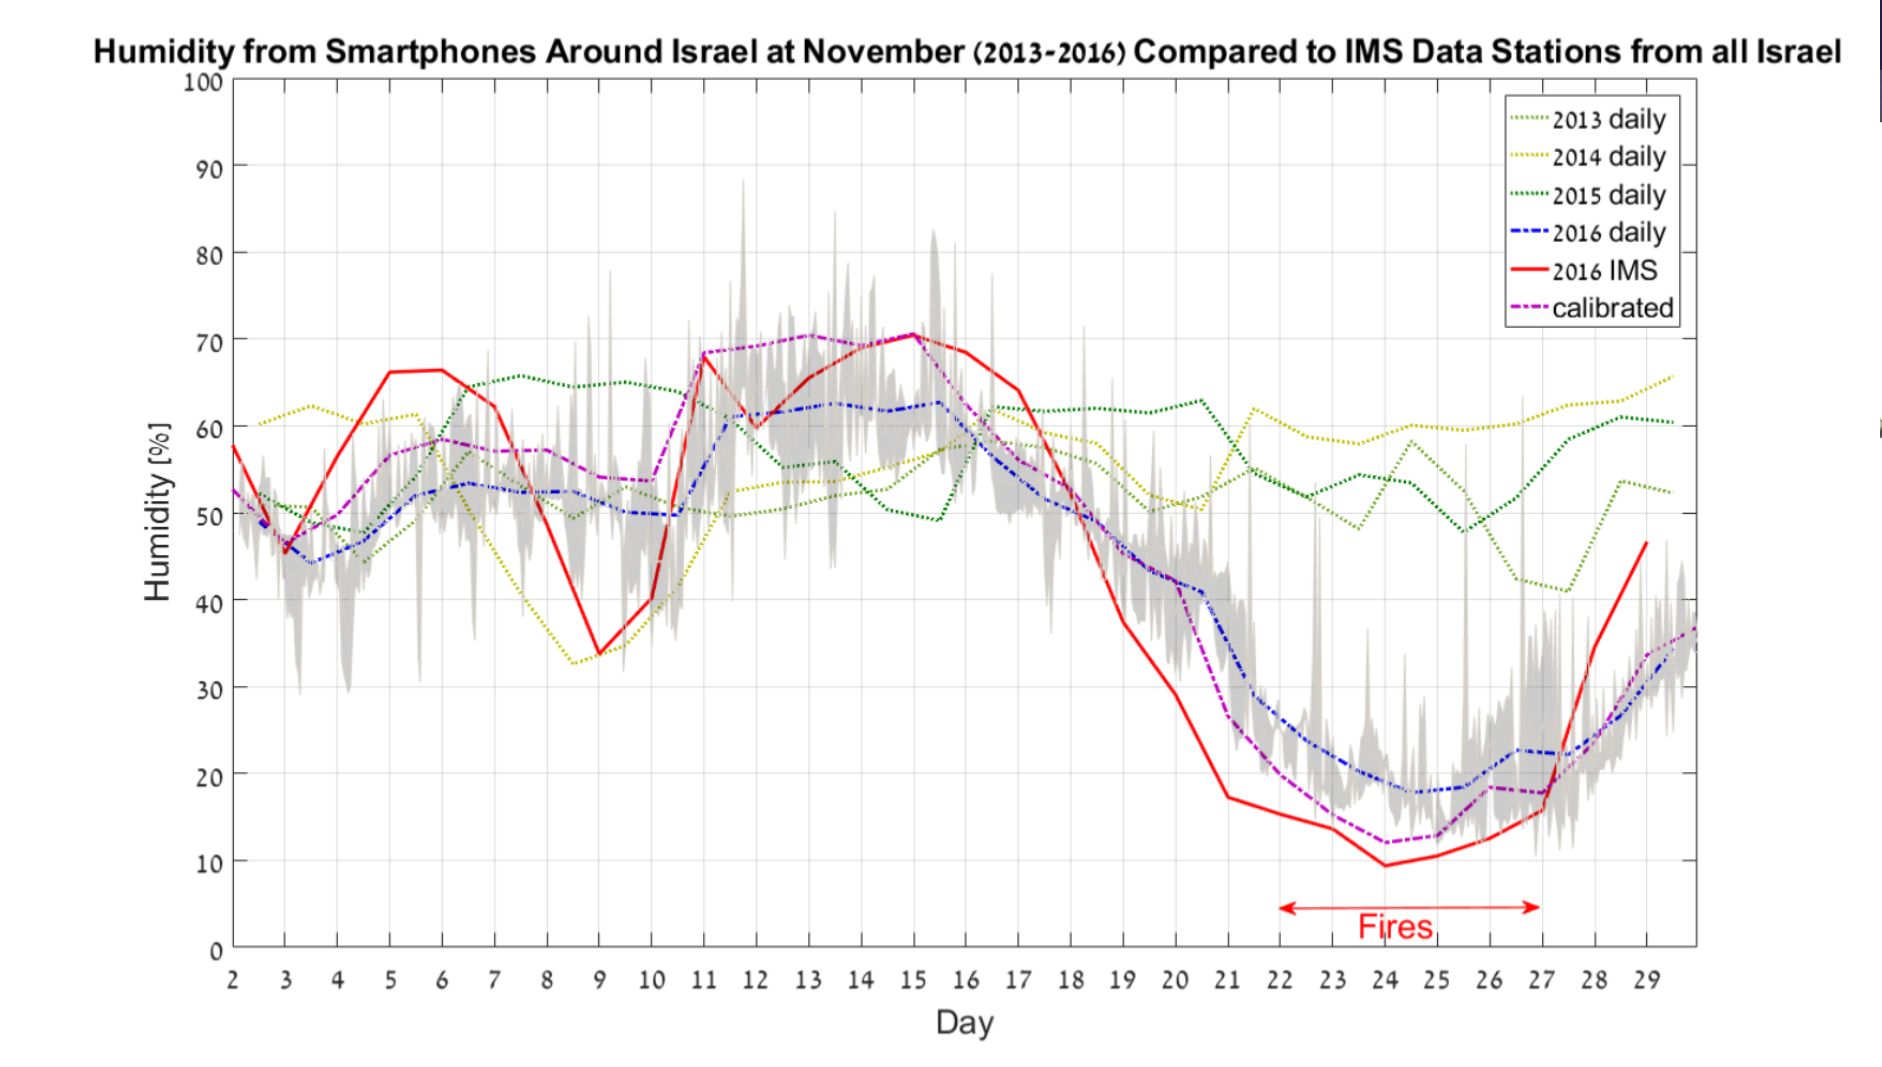 Humidity from Smartphones around Israel at November 2013-2016 compared to IMS data stations from all Israel